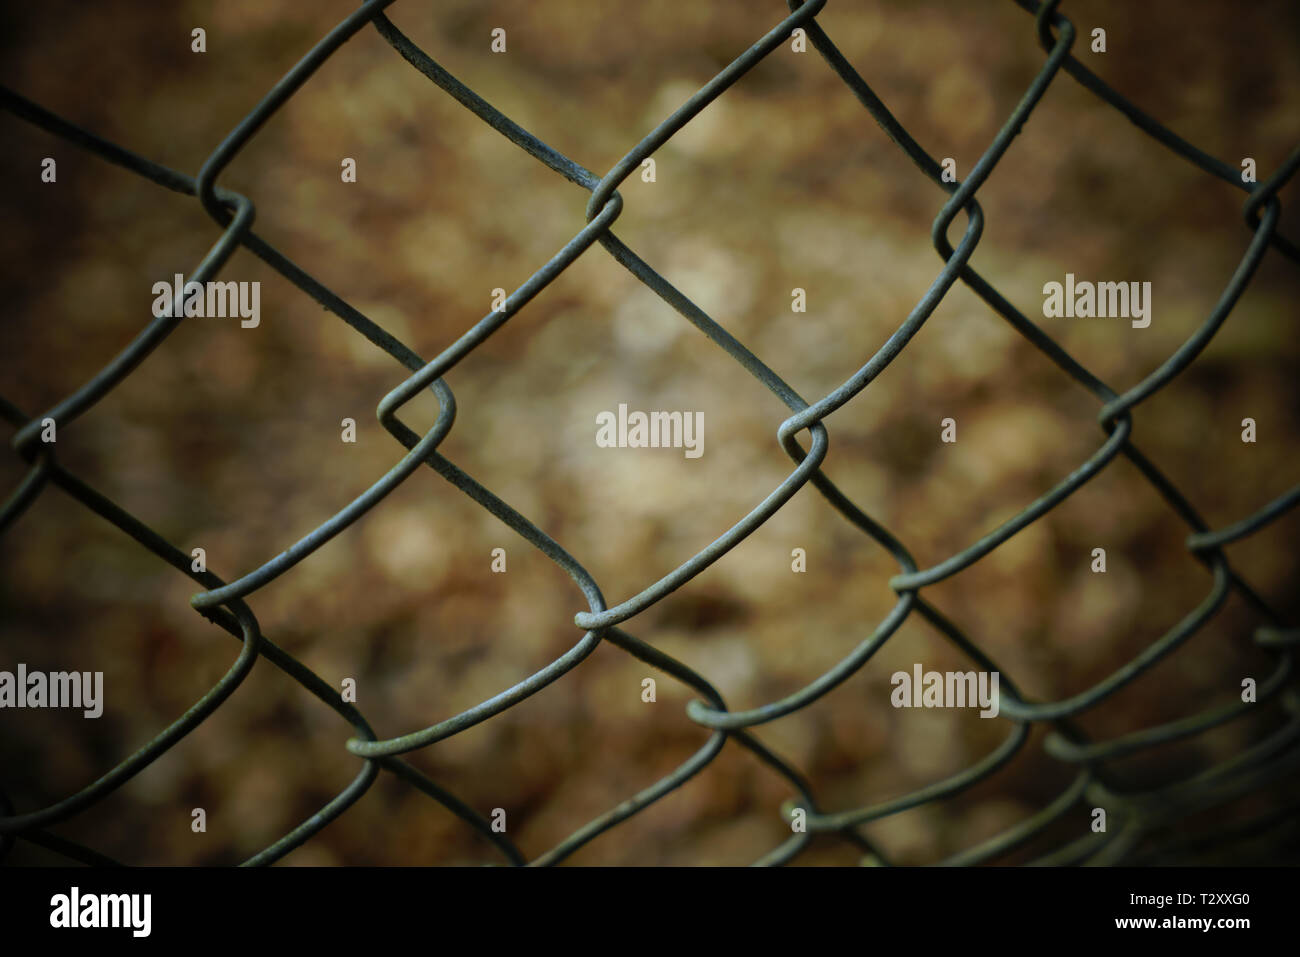 Close up of a chain link fence with blurred background. - Stock Image